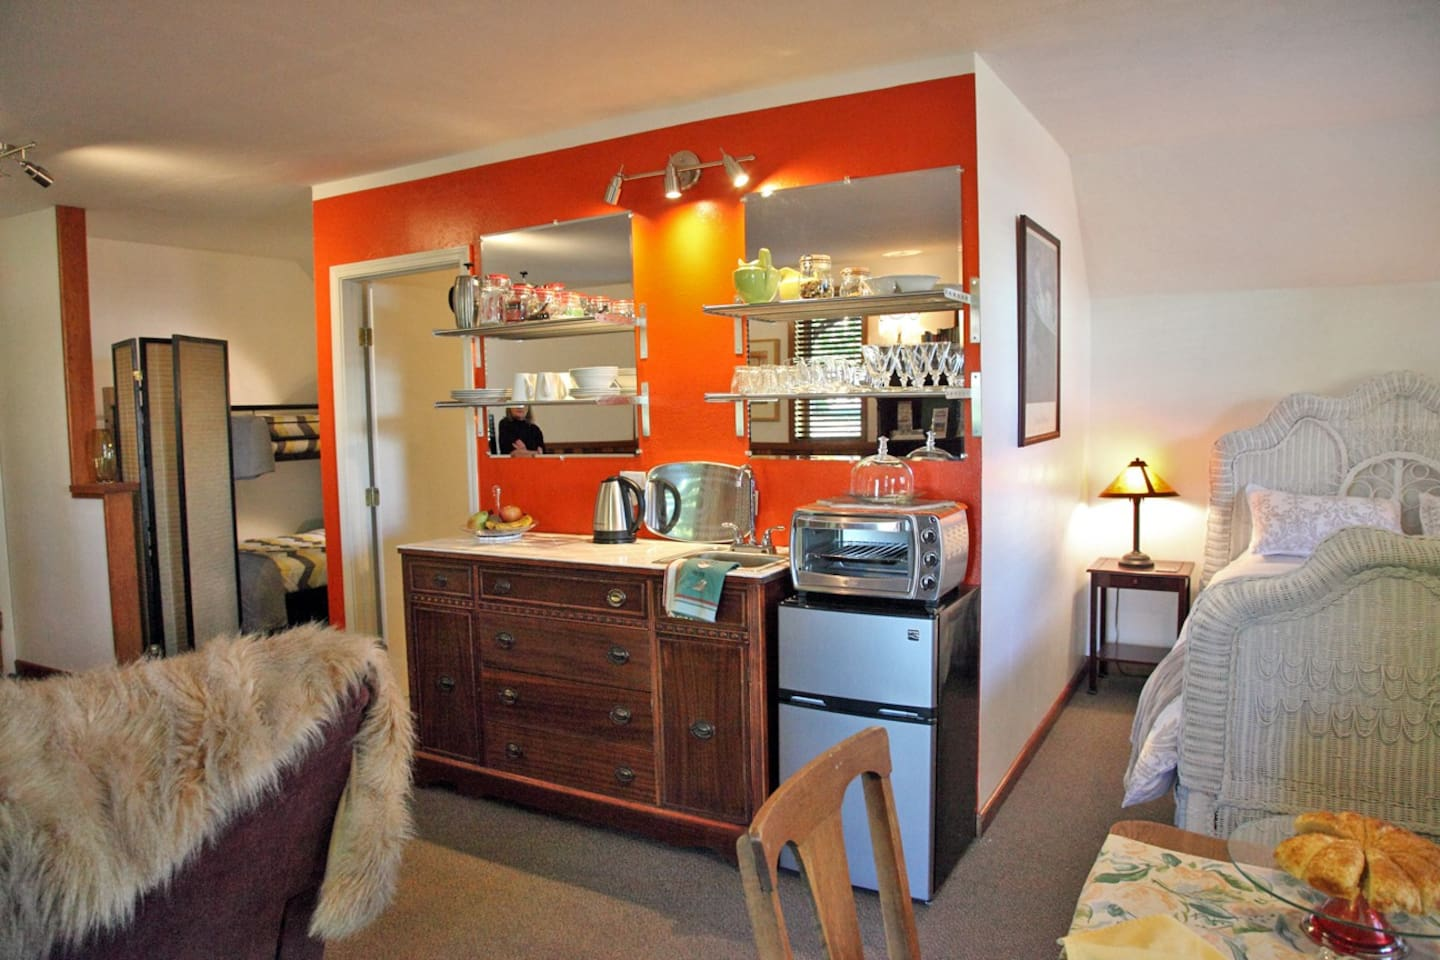 Your kitchenette consists of refrigerator and toaster oven. A french press for coffee.  Your breakfast supplies will typically consist of fresh fruit and juices. Bagels with homemade preserves. Tea and coffee.